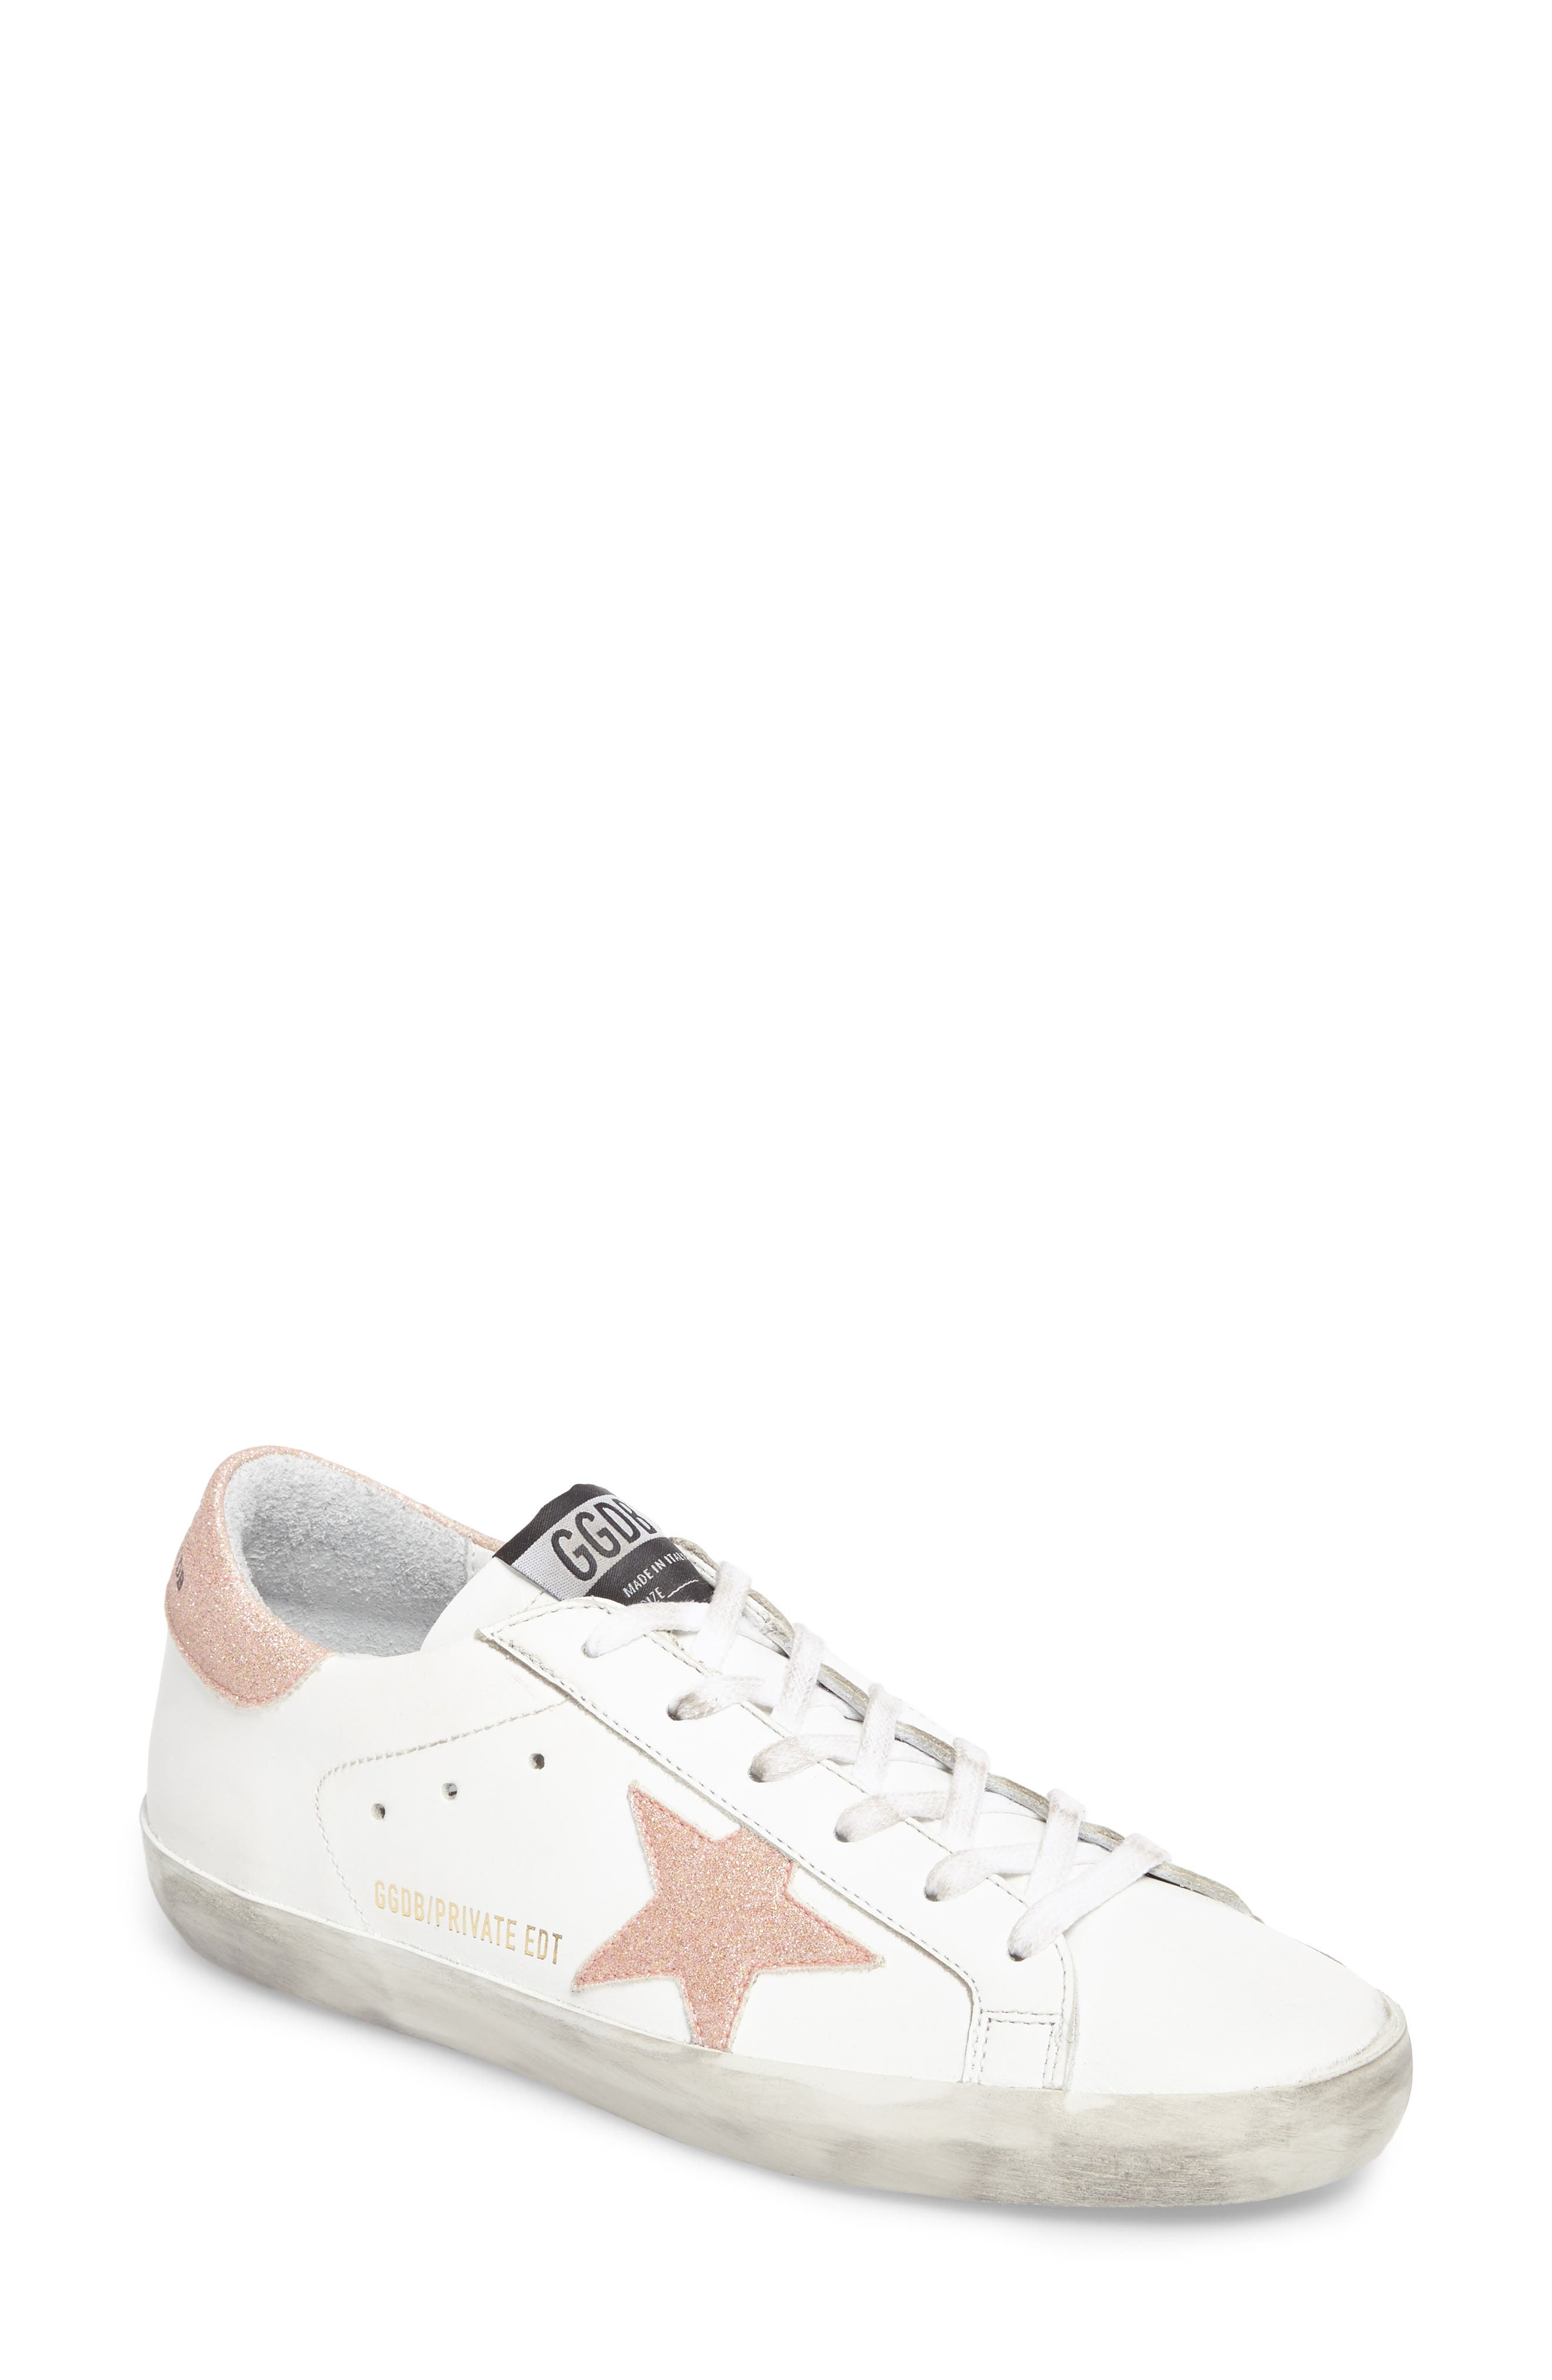 Superstar Low Top Sneaker,                         Main,                         color, White/ Peach